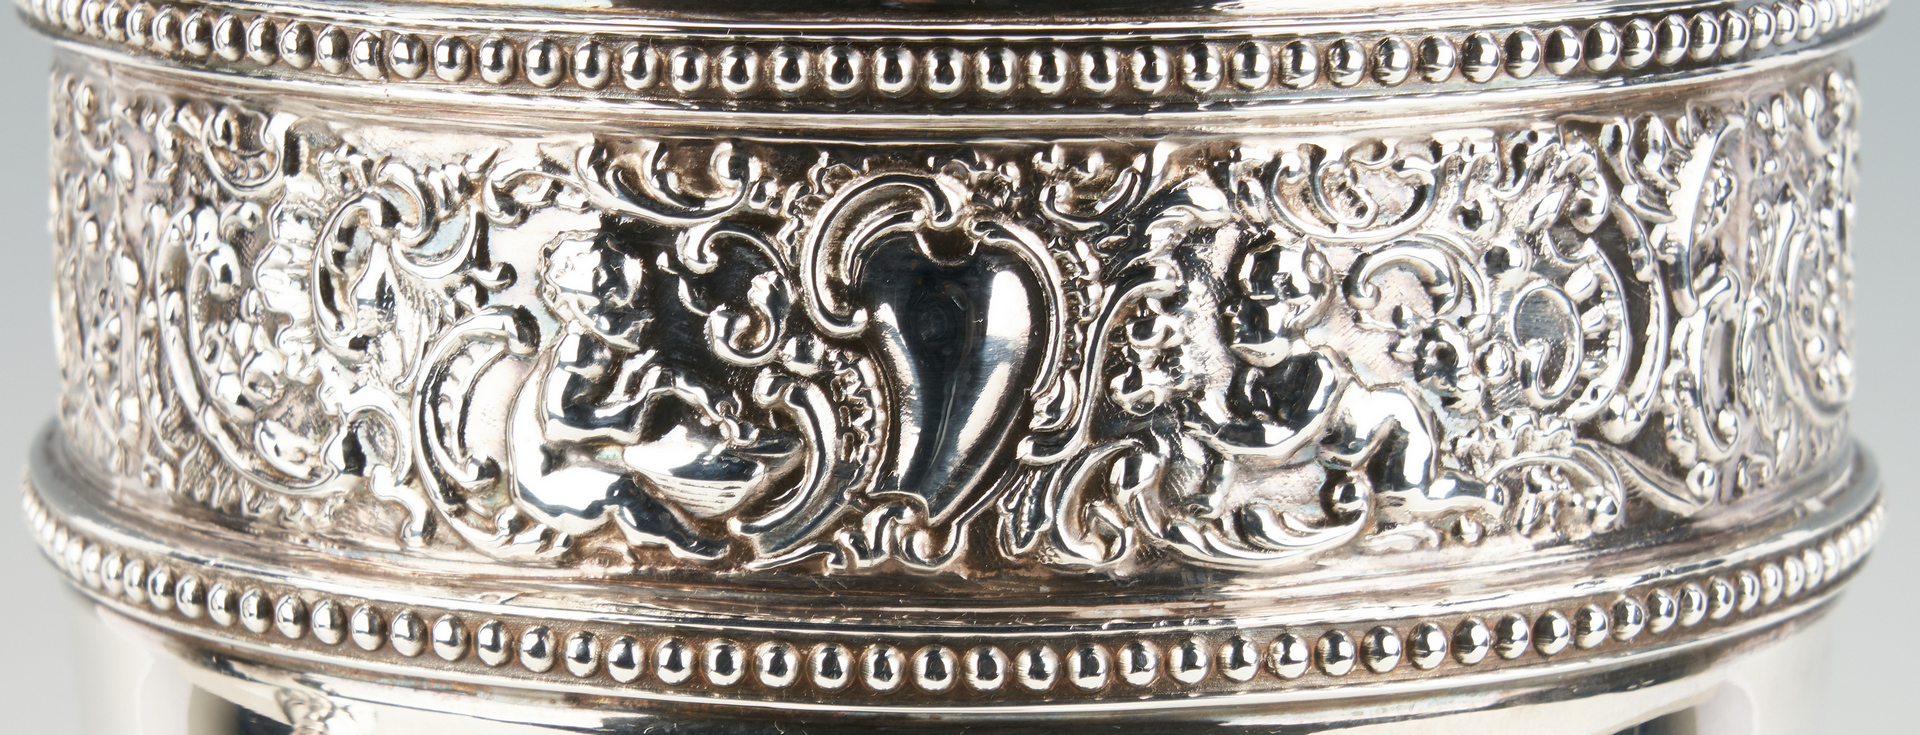 Lot 953: Pair Tall Silverplated Urns or Vases